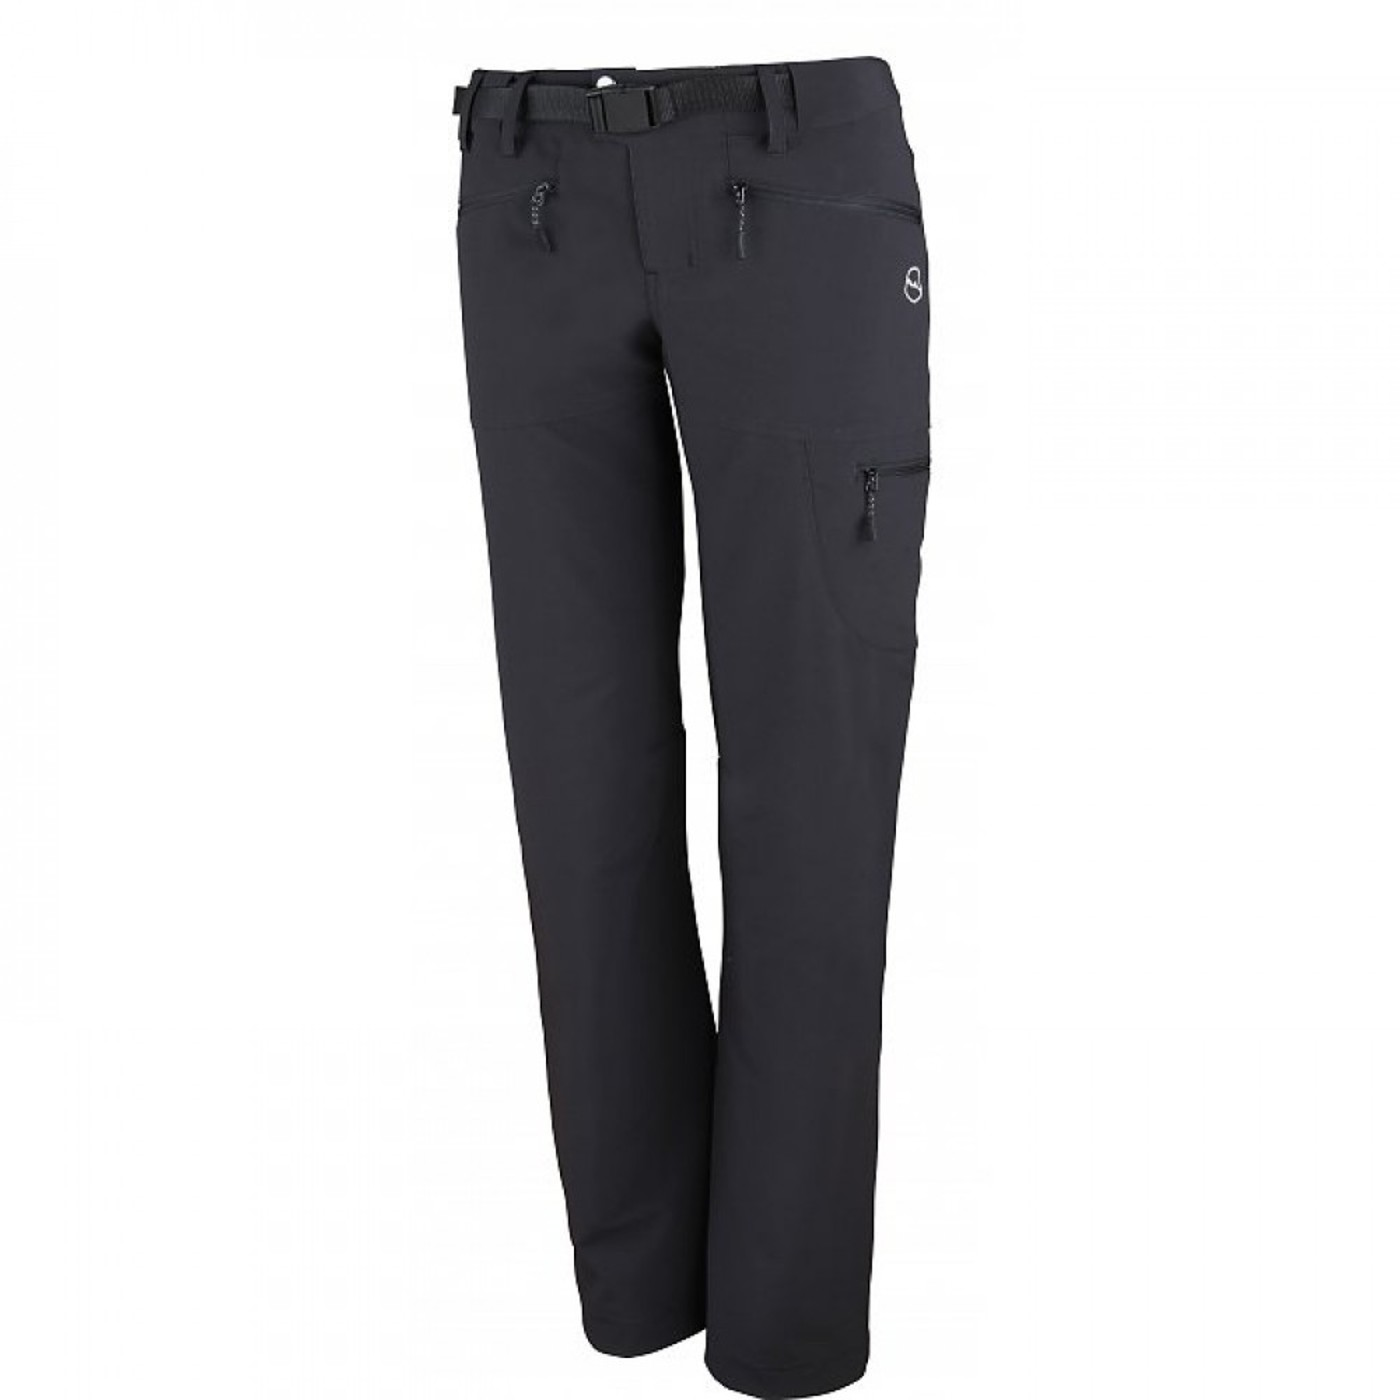 HIGH COLORADO Lds. trekking pants MONTANA-L - Damen